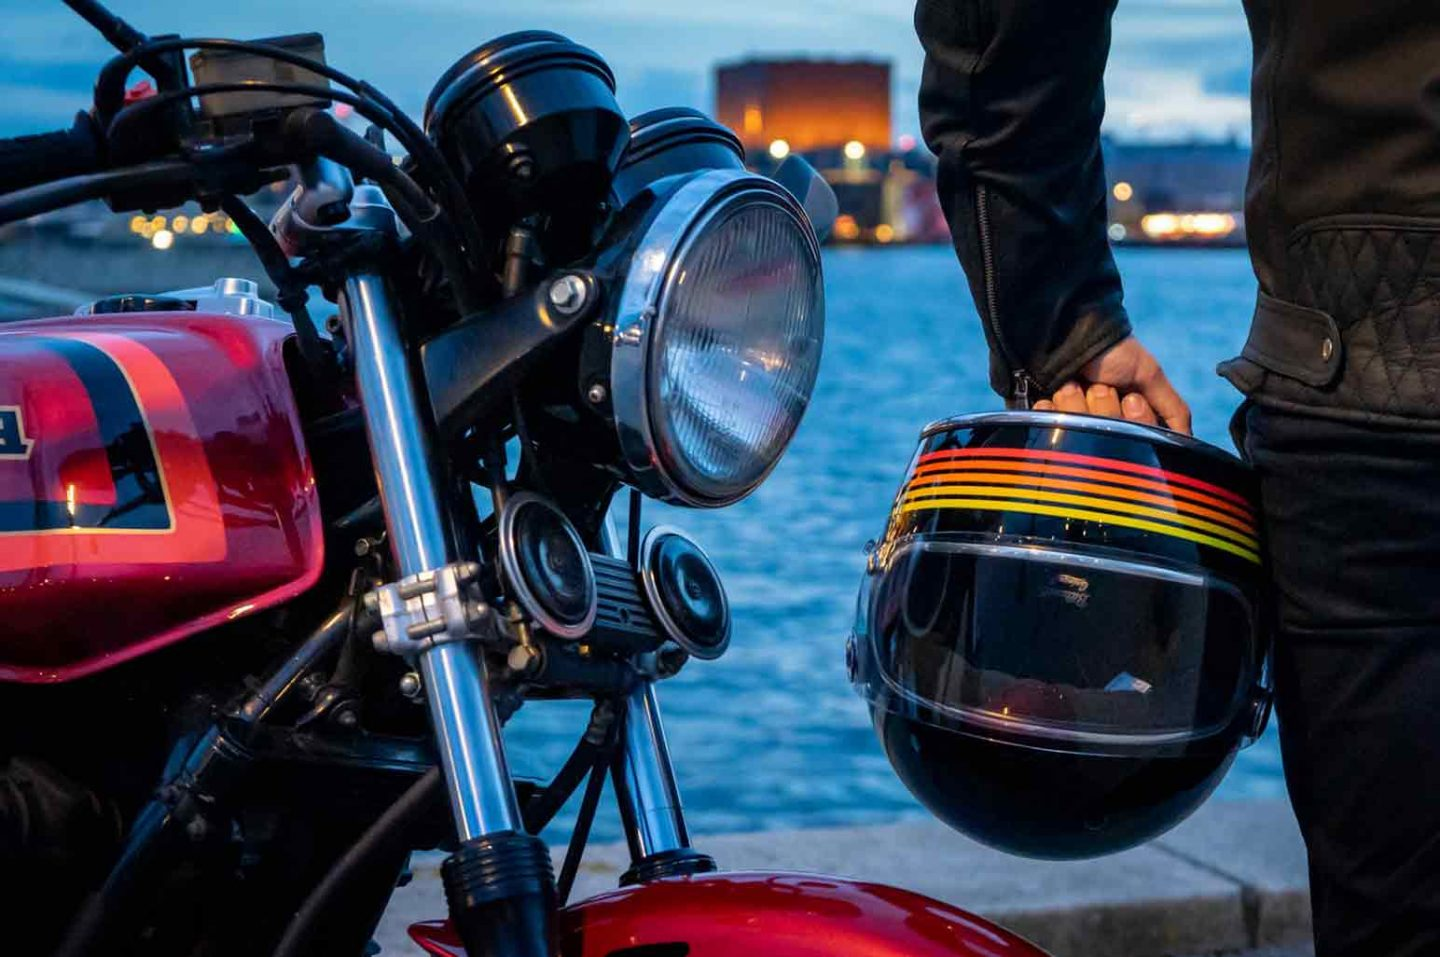 Why Vintage Motorcycles Are Popular